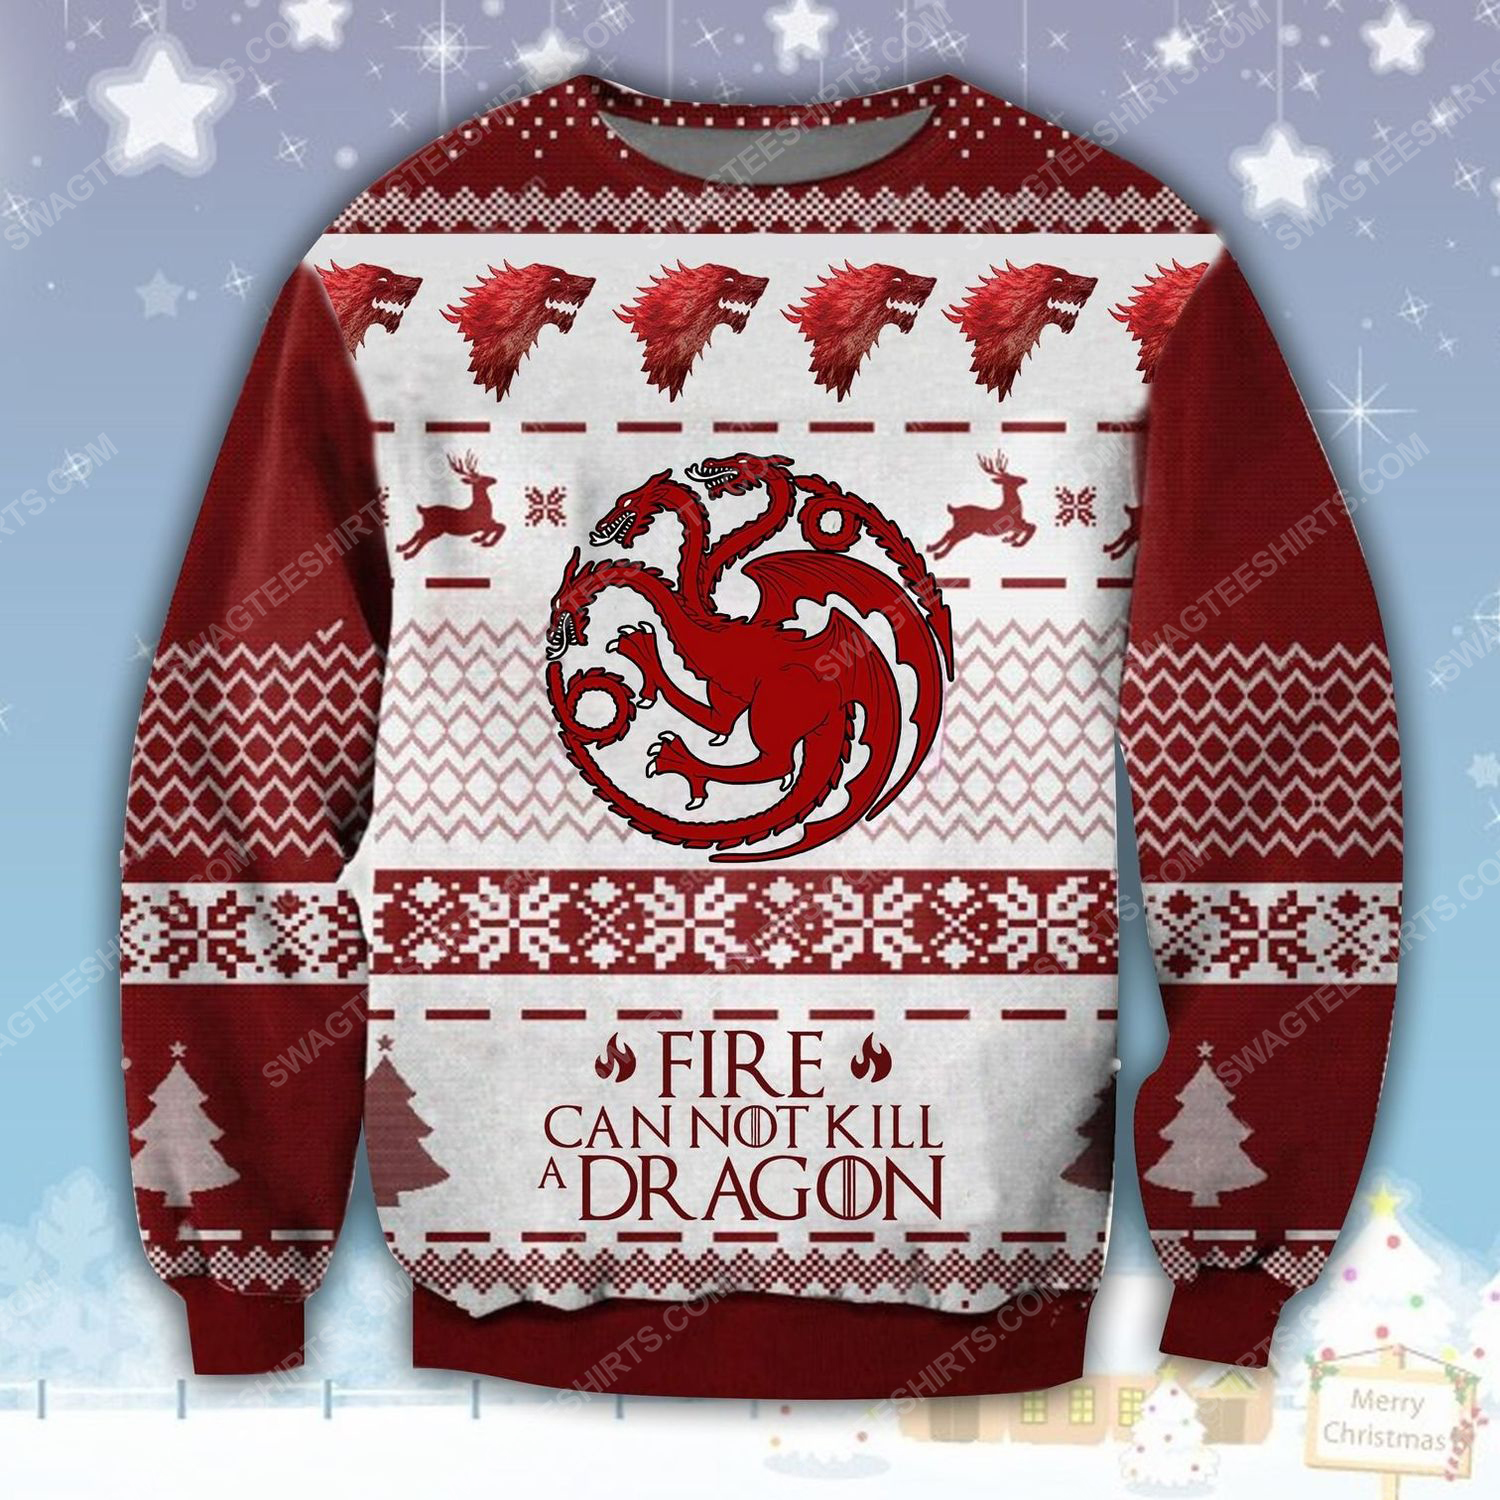 Game of thrones fire cannot kill a dragon ugly christmas sweater - Copy (3)